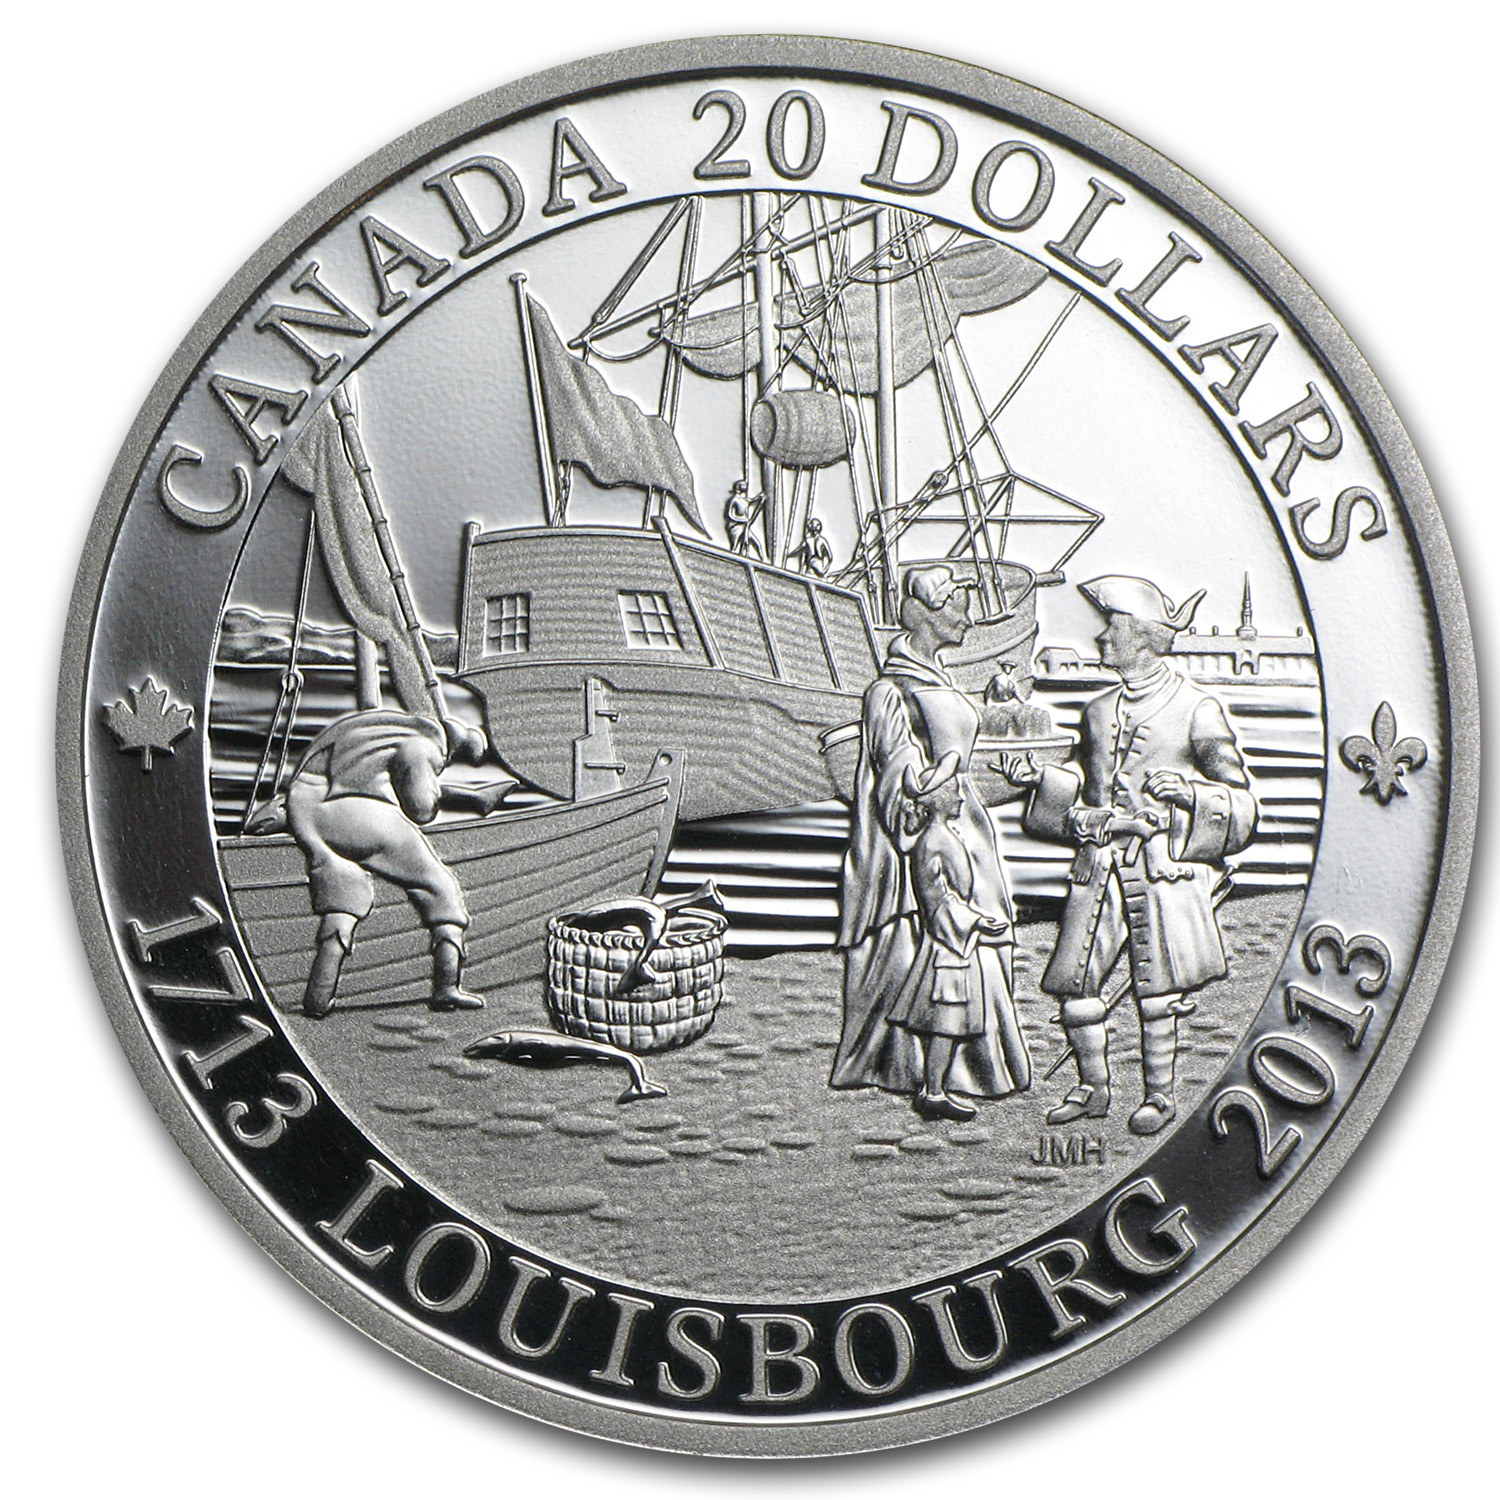 2013 Canada 1 oz Silver $20 300th Anniversary of Louisbourg